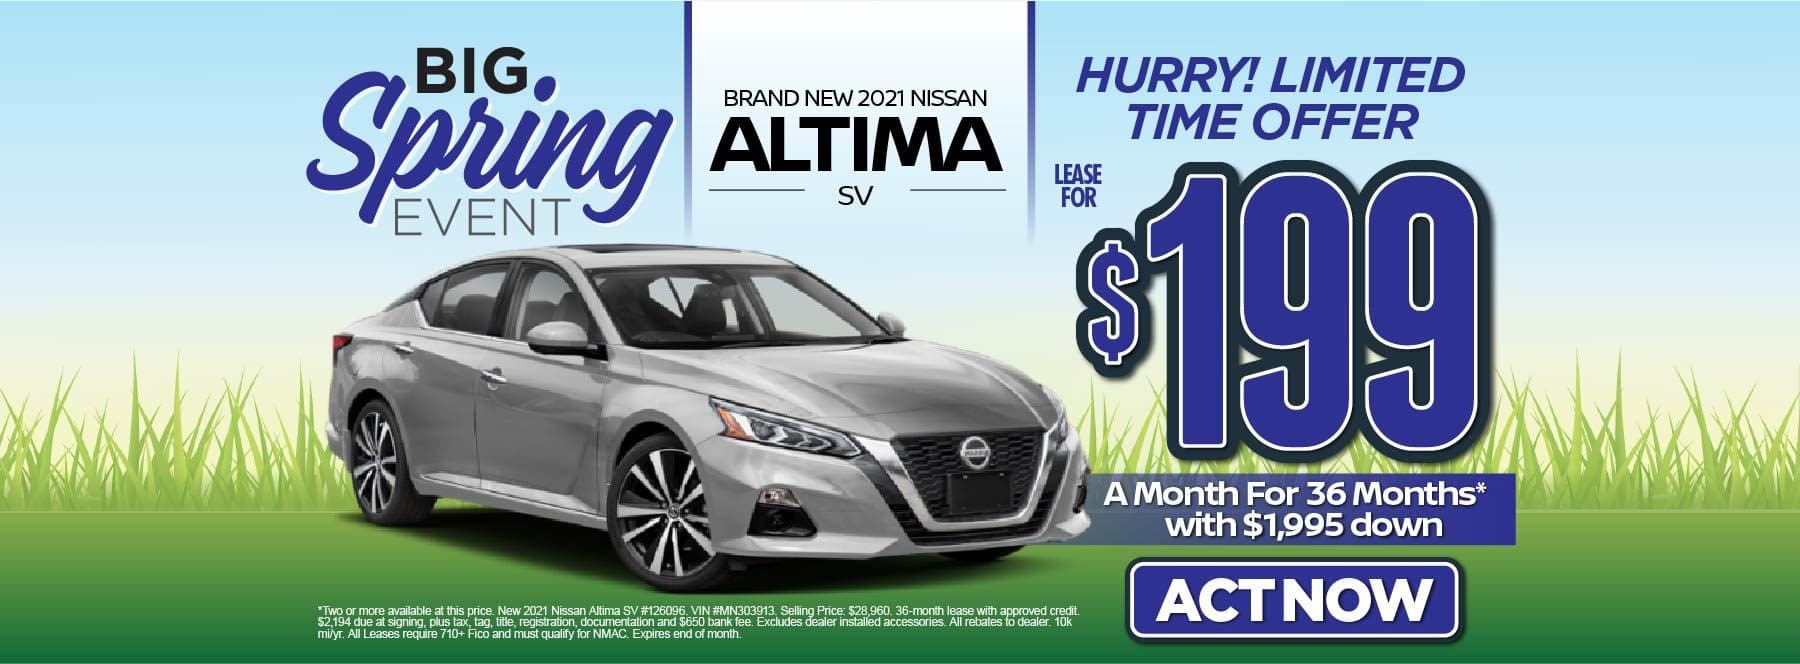 New 2021 Nissan Altima SV – Lease for $199/mo for 36 months with $1,995 Down* Act now.